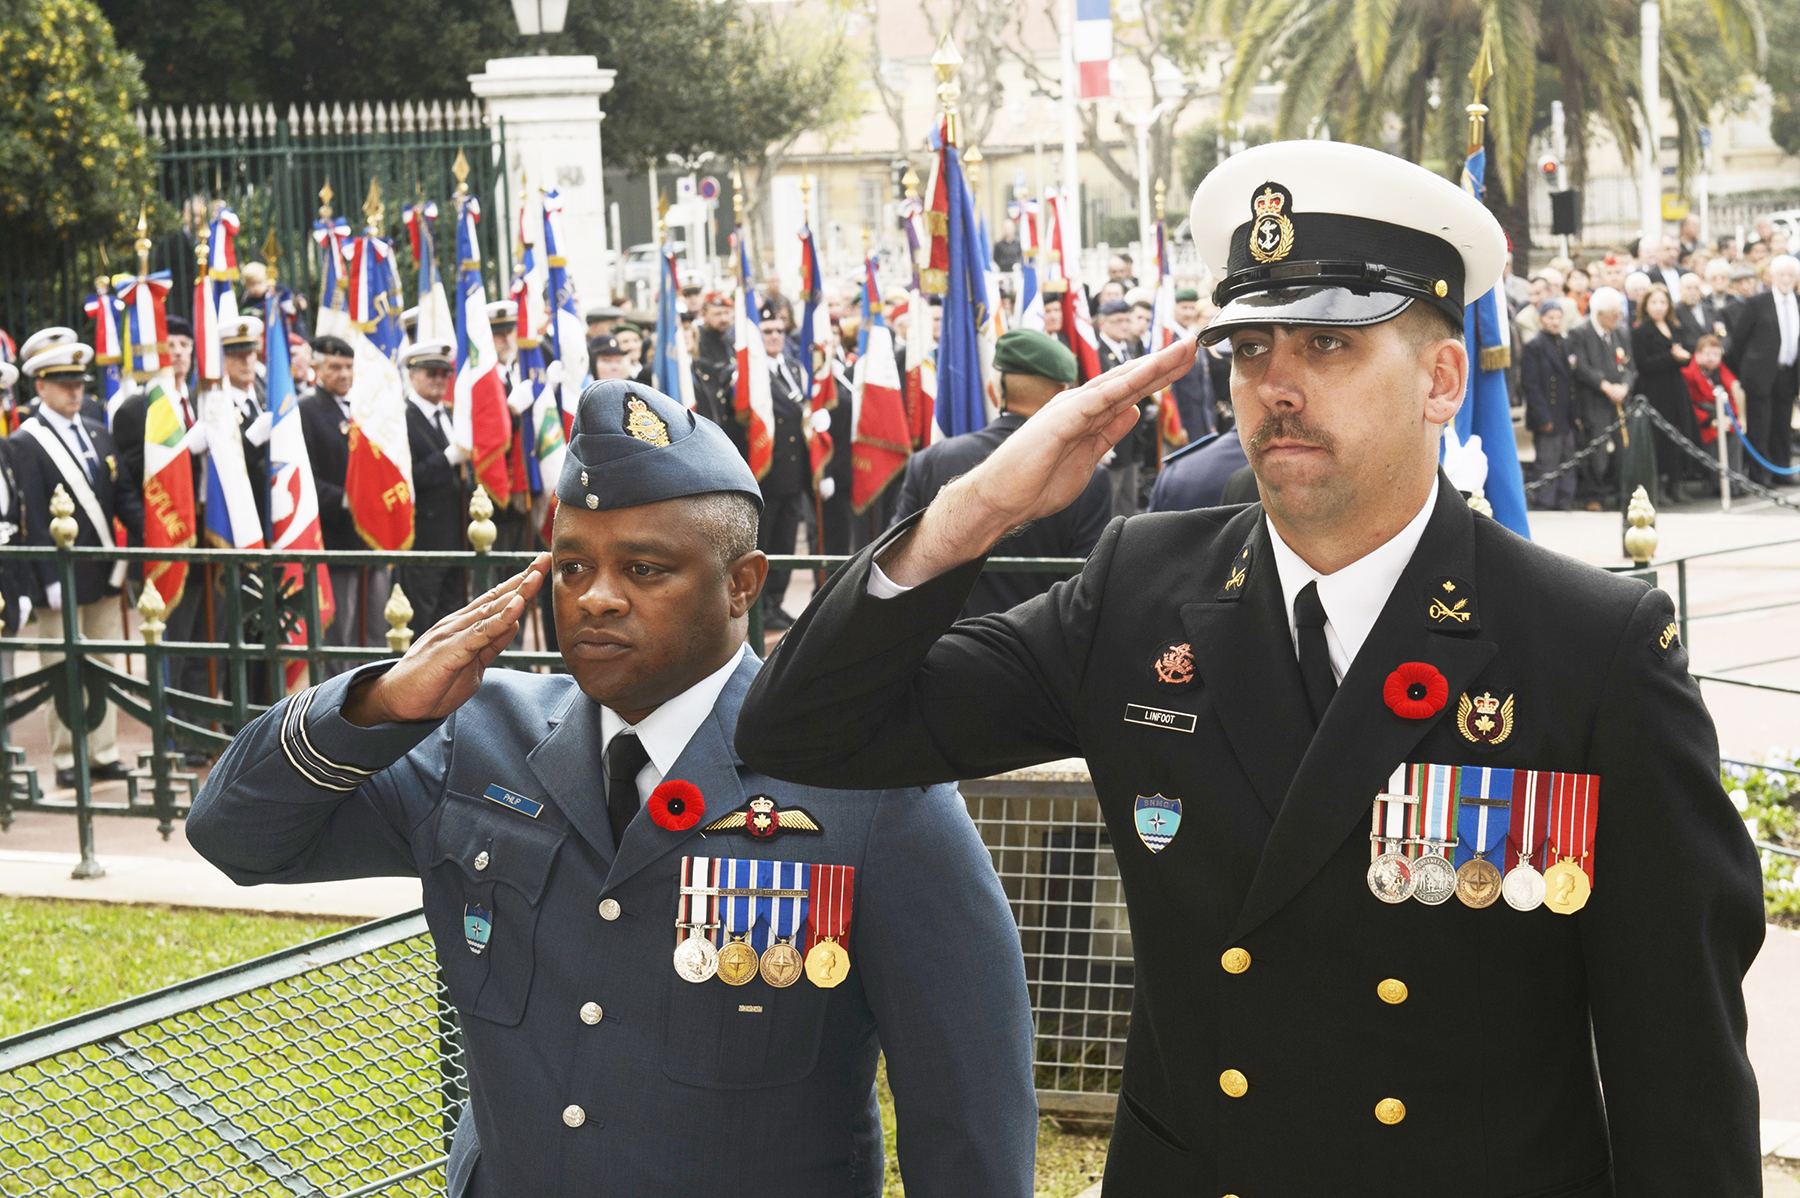 Major Don Philip, the acting air officer on board Her Majesty's Canadian Ship Winnipeg, and Petty Officer 1st Class Trevor Linfoot, ship's senior steward, both deployed on Operation Reassurance, salute after placing a wreath on behalf of the ship's commanding officer and crew at the cenotaph during the November 11, 2015, Remembrance Day ceremony in Toulon, France. PHOTO: Corporal Stuart MacNeil